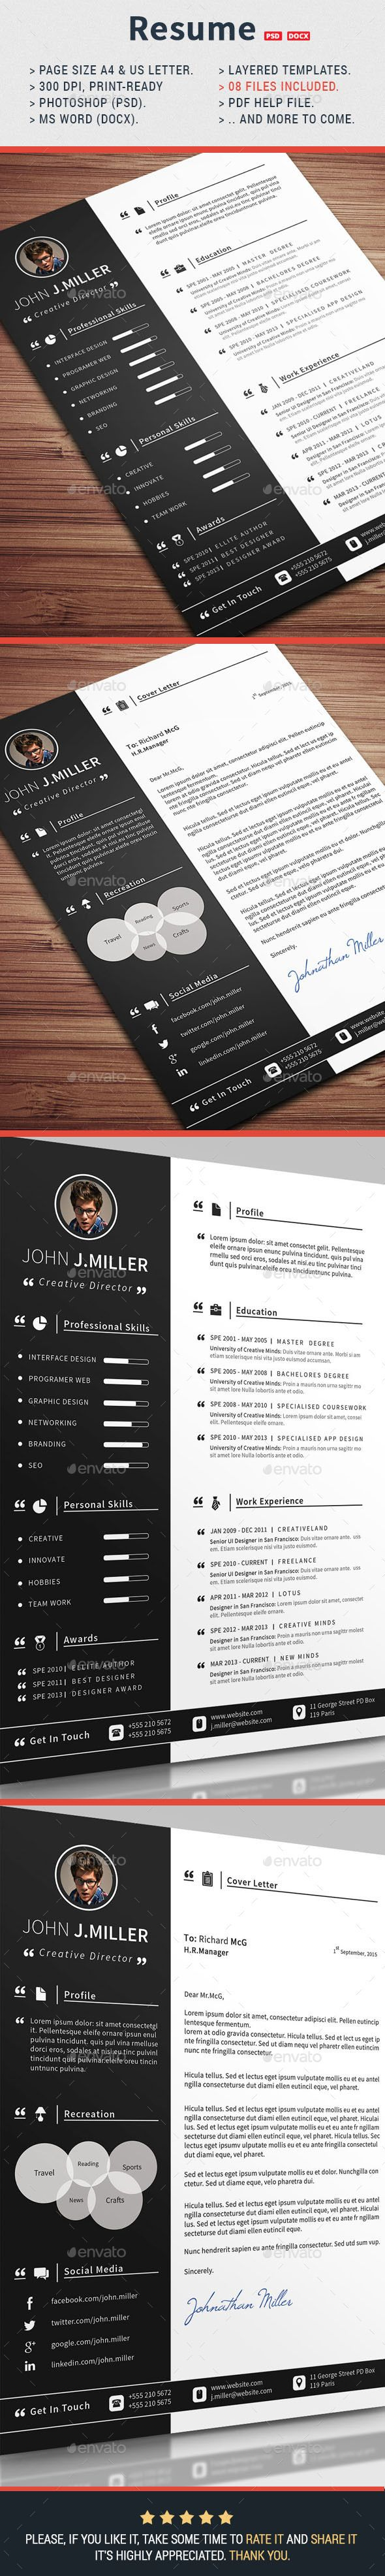 resume creative interview and graphics